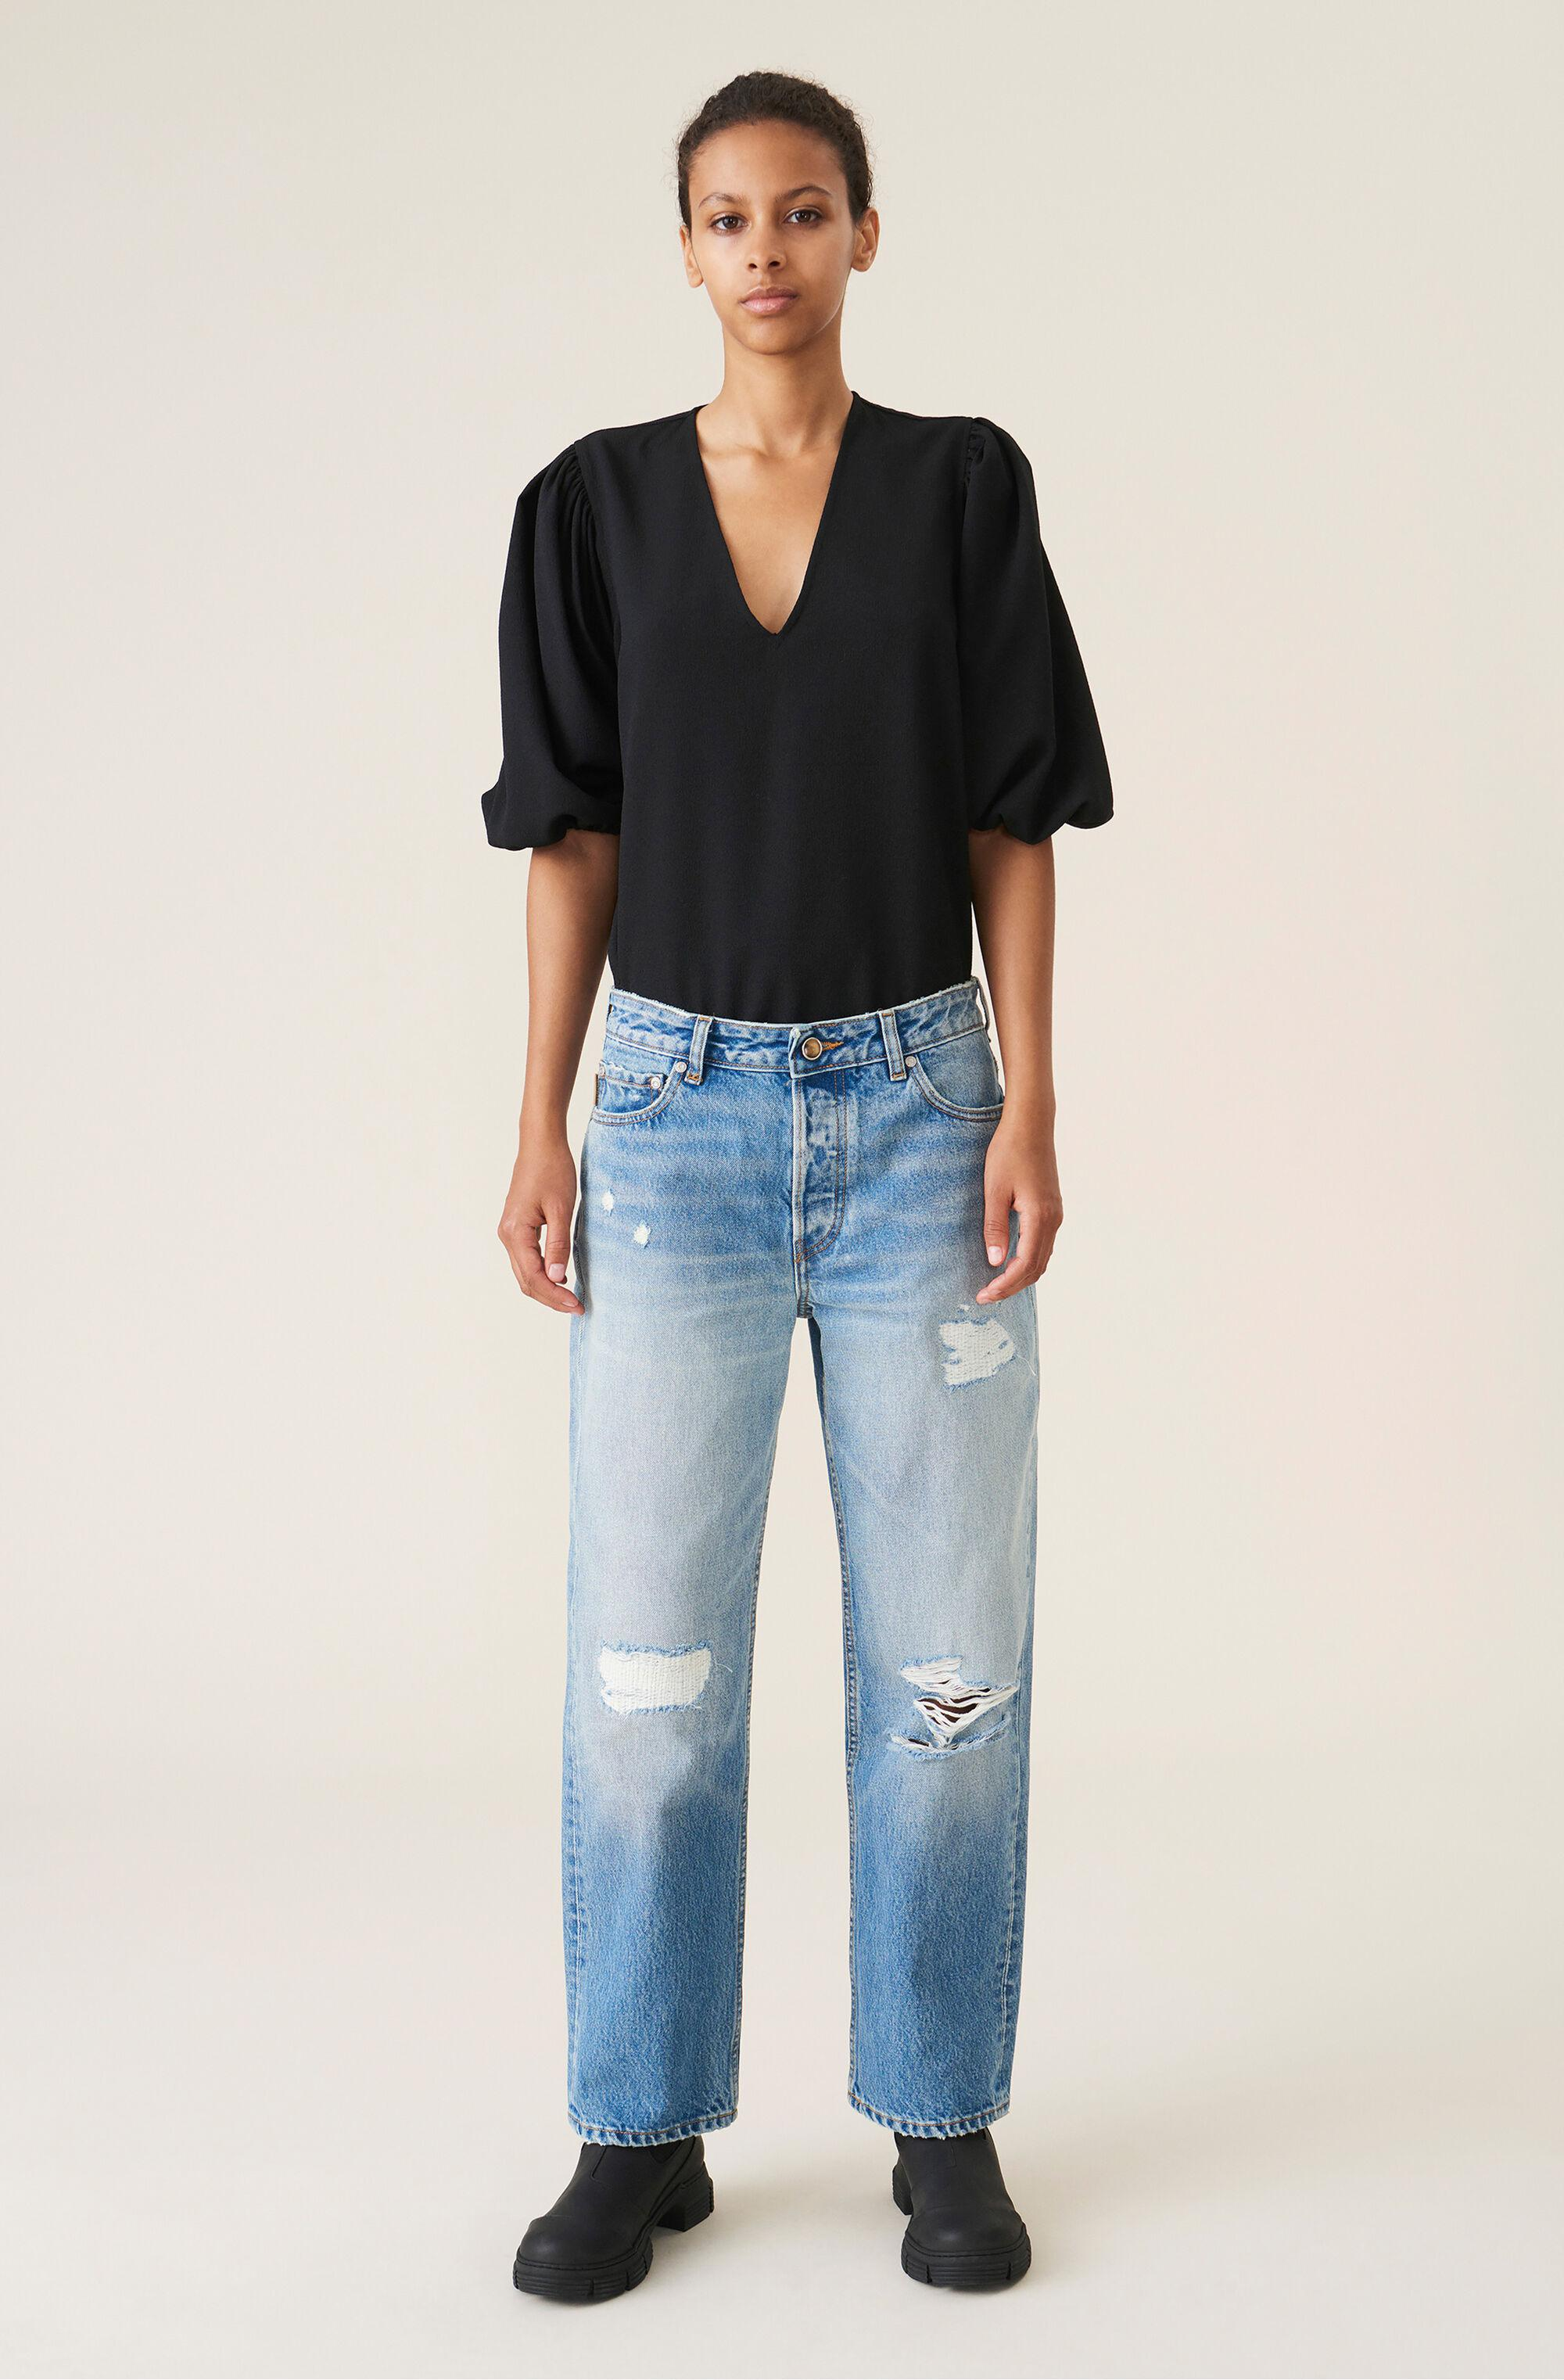 Overwashed Denim Low-waist Relaxed Fit Jeans